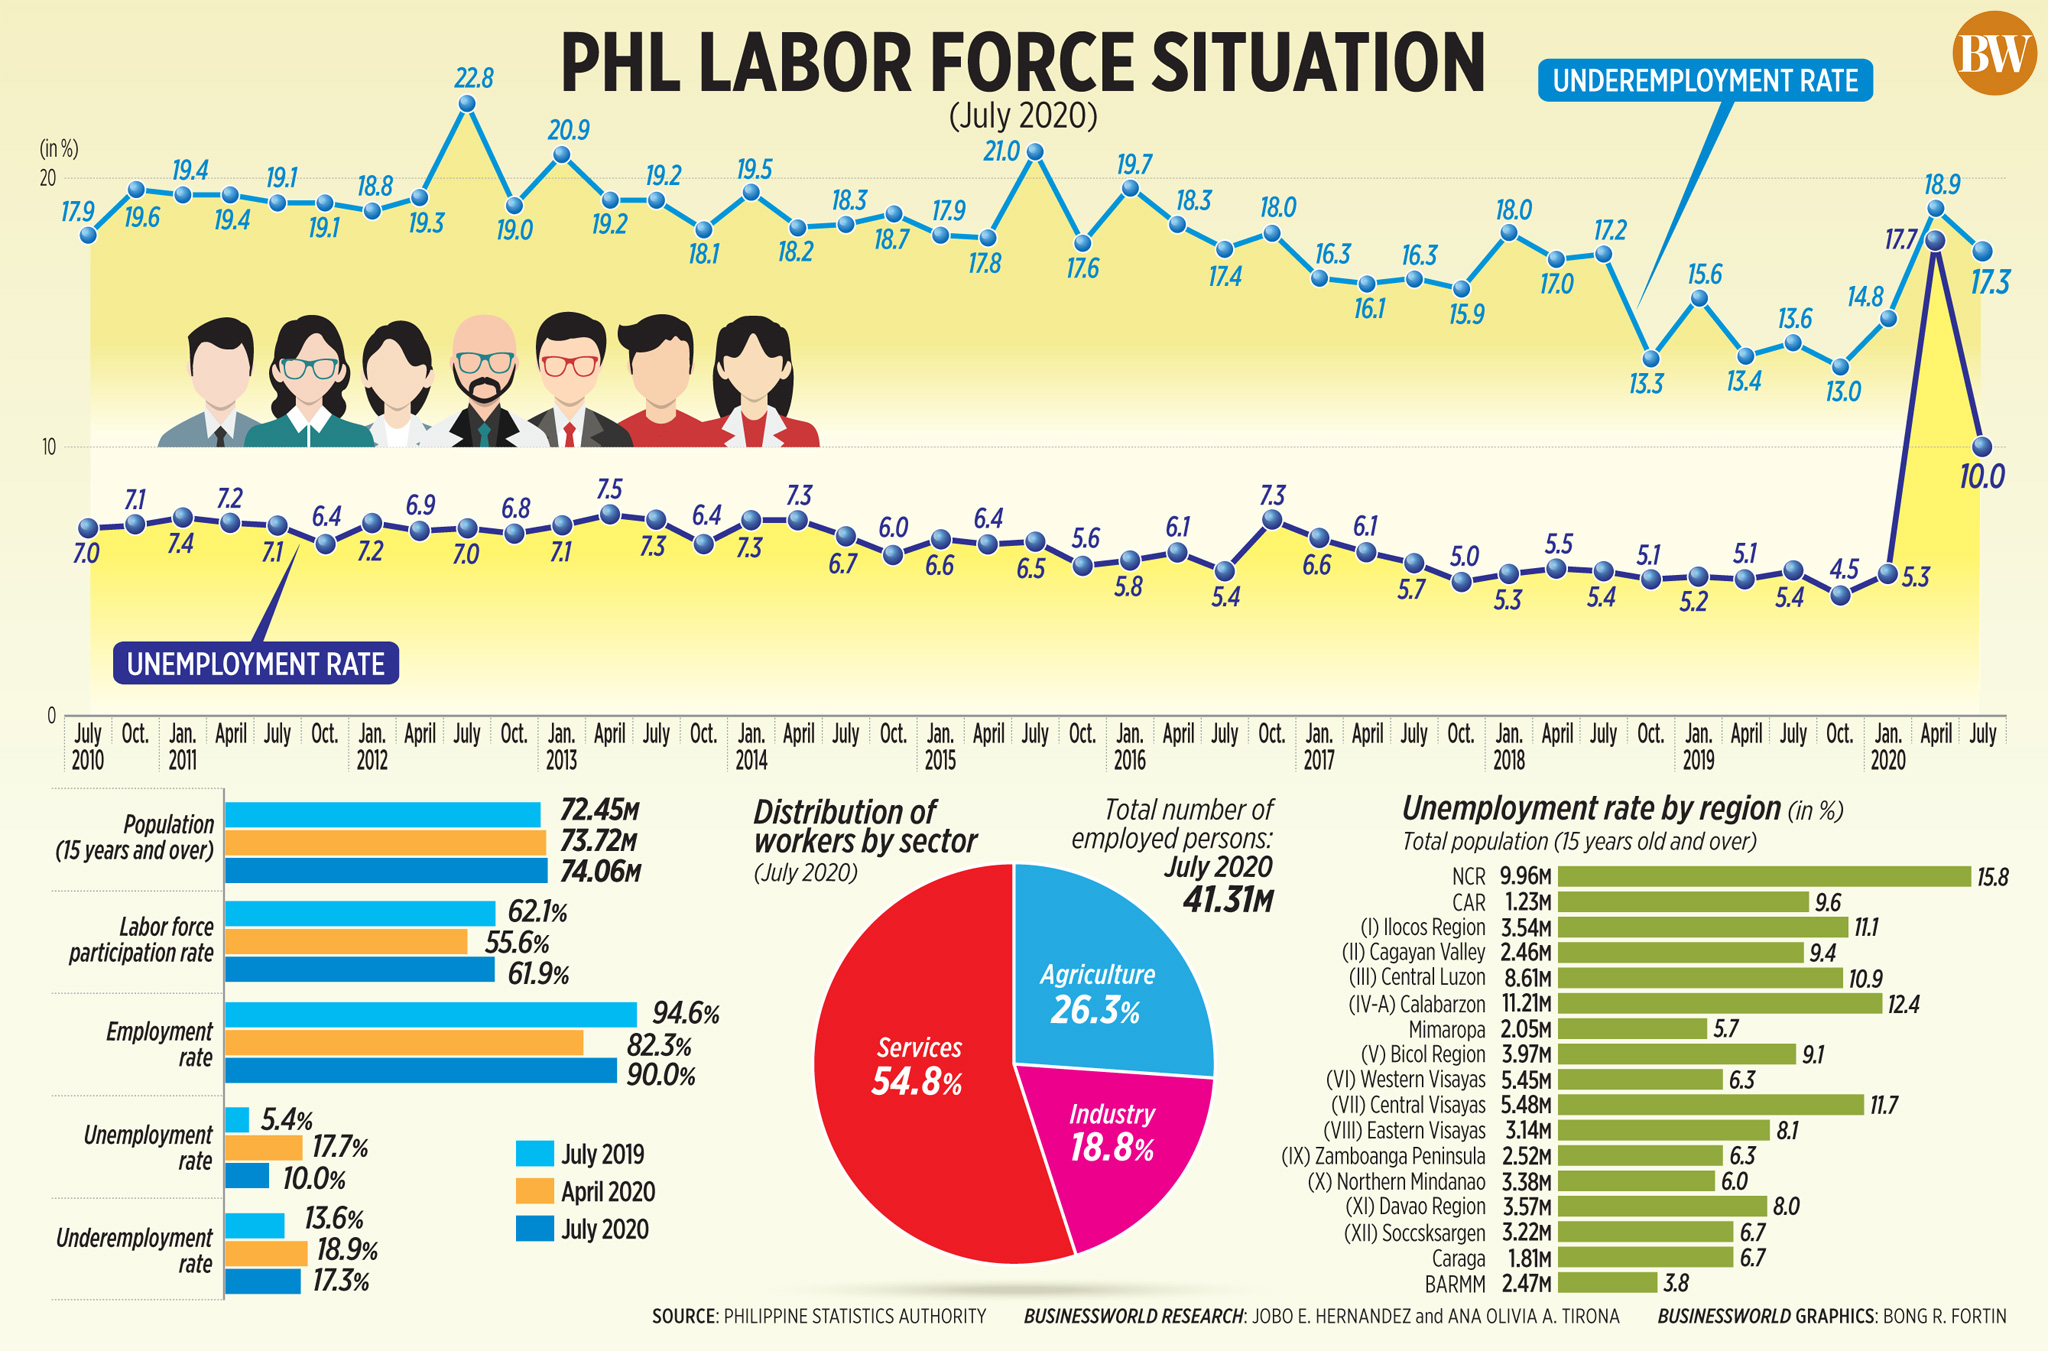 50301470437 89bd472891 o - PHL labor force situation (July 2020)